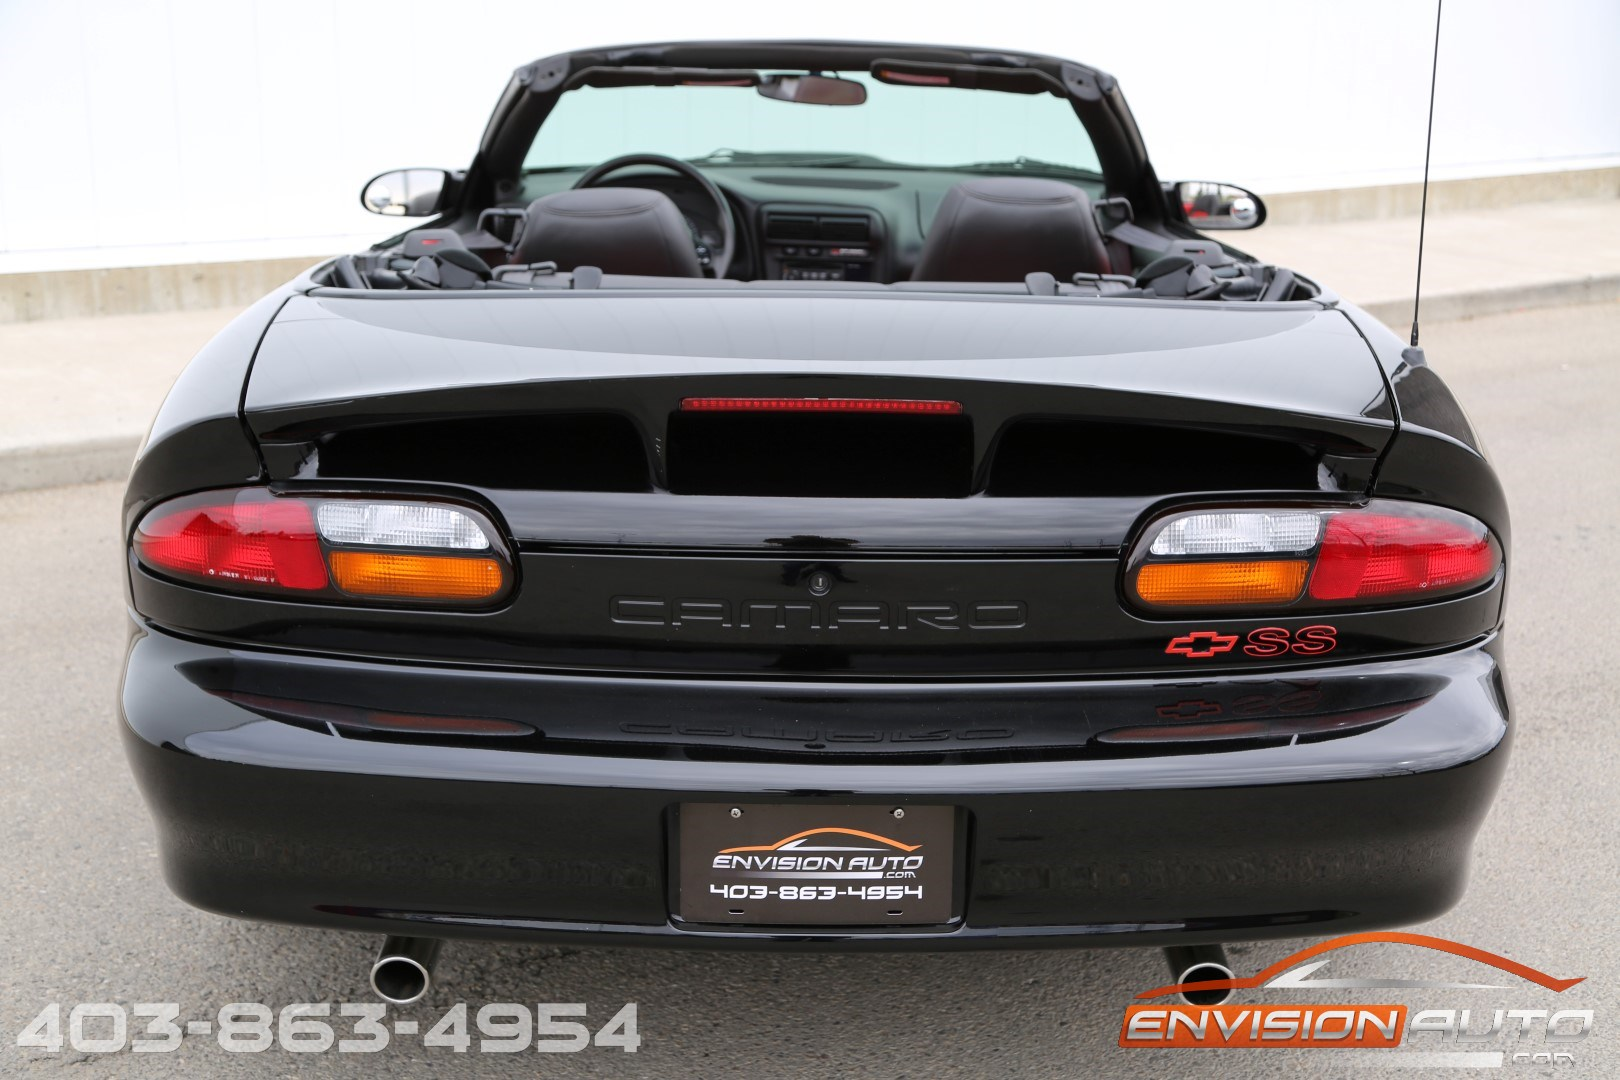 2002 chevrolet camaro z28 ss convertible 35th anniversary. Cars Review. Best American Auto & Cars Review